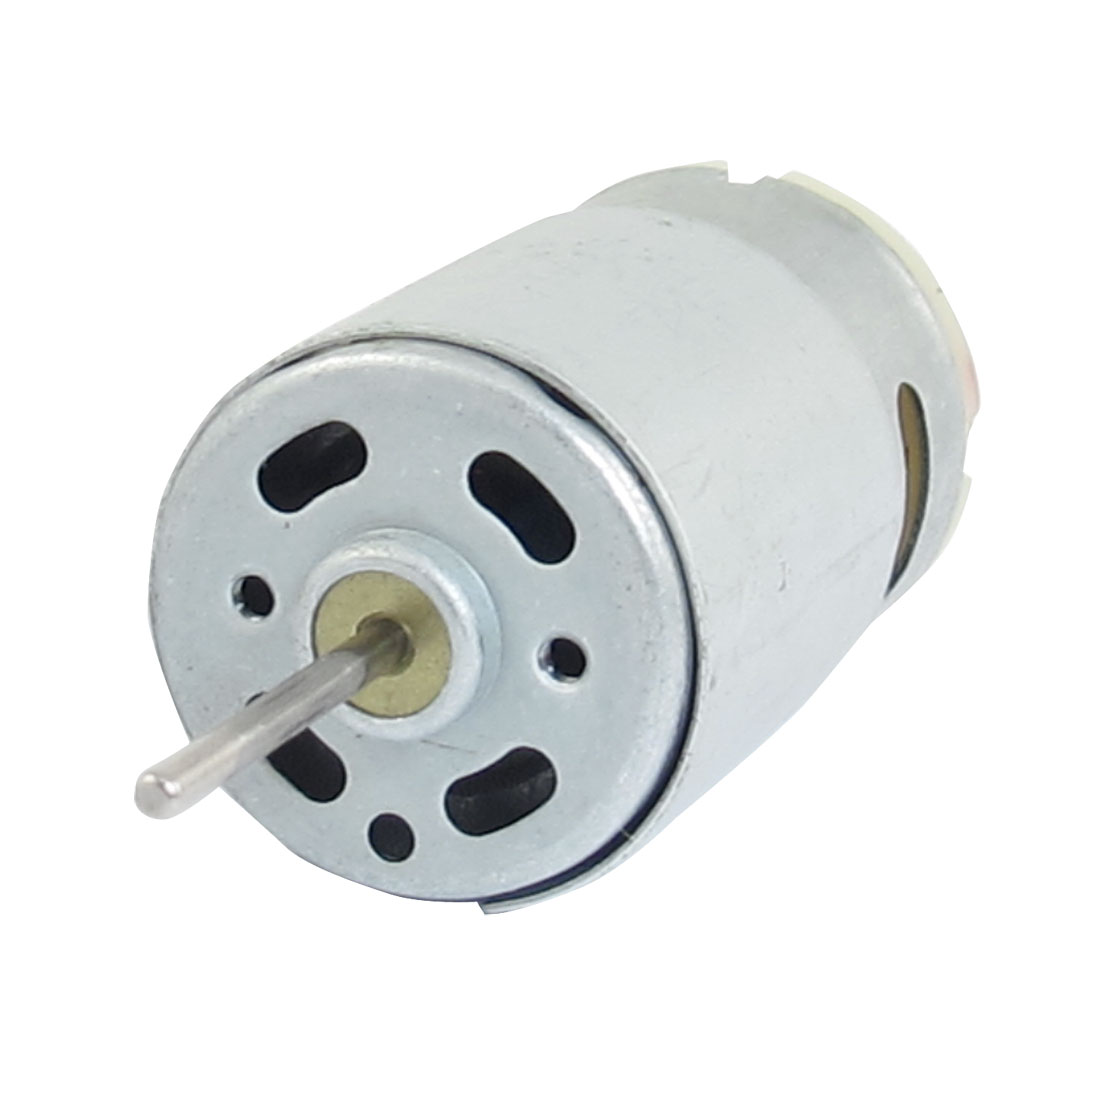 24V DC 4100RPM 0.04mA Round Cylinder 390 Motor for Four-wheel Car